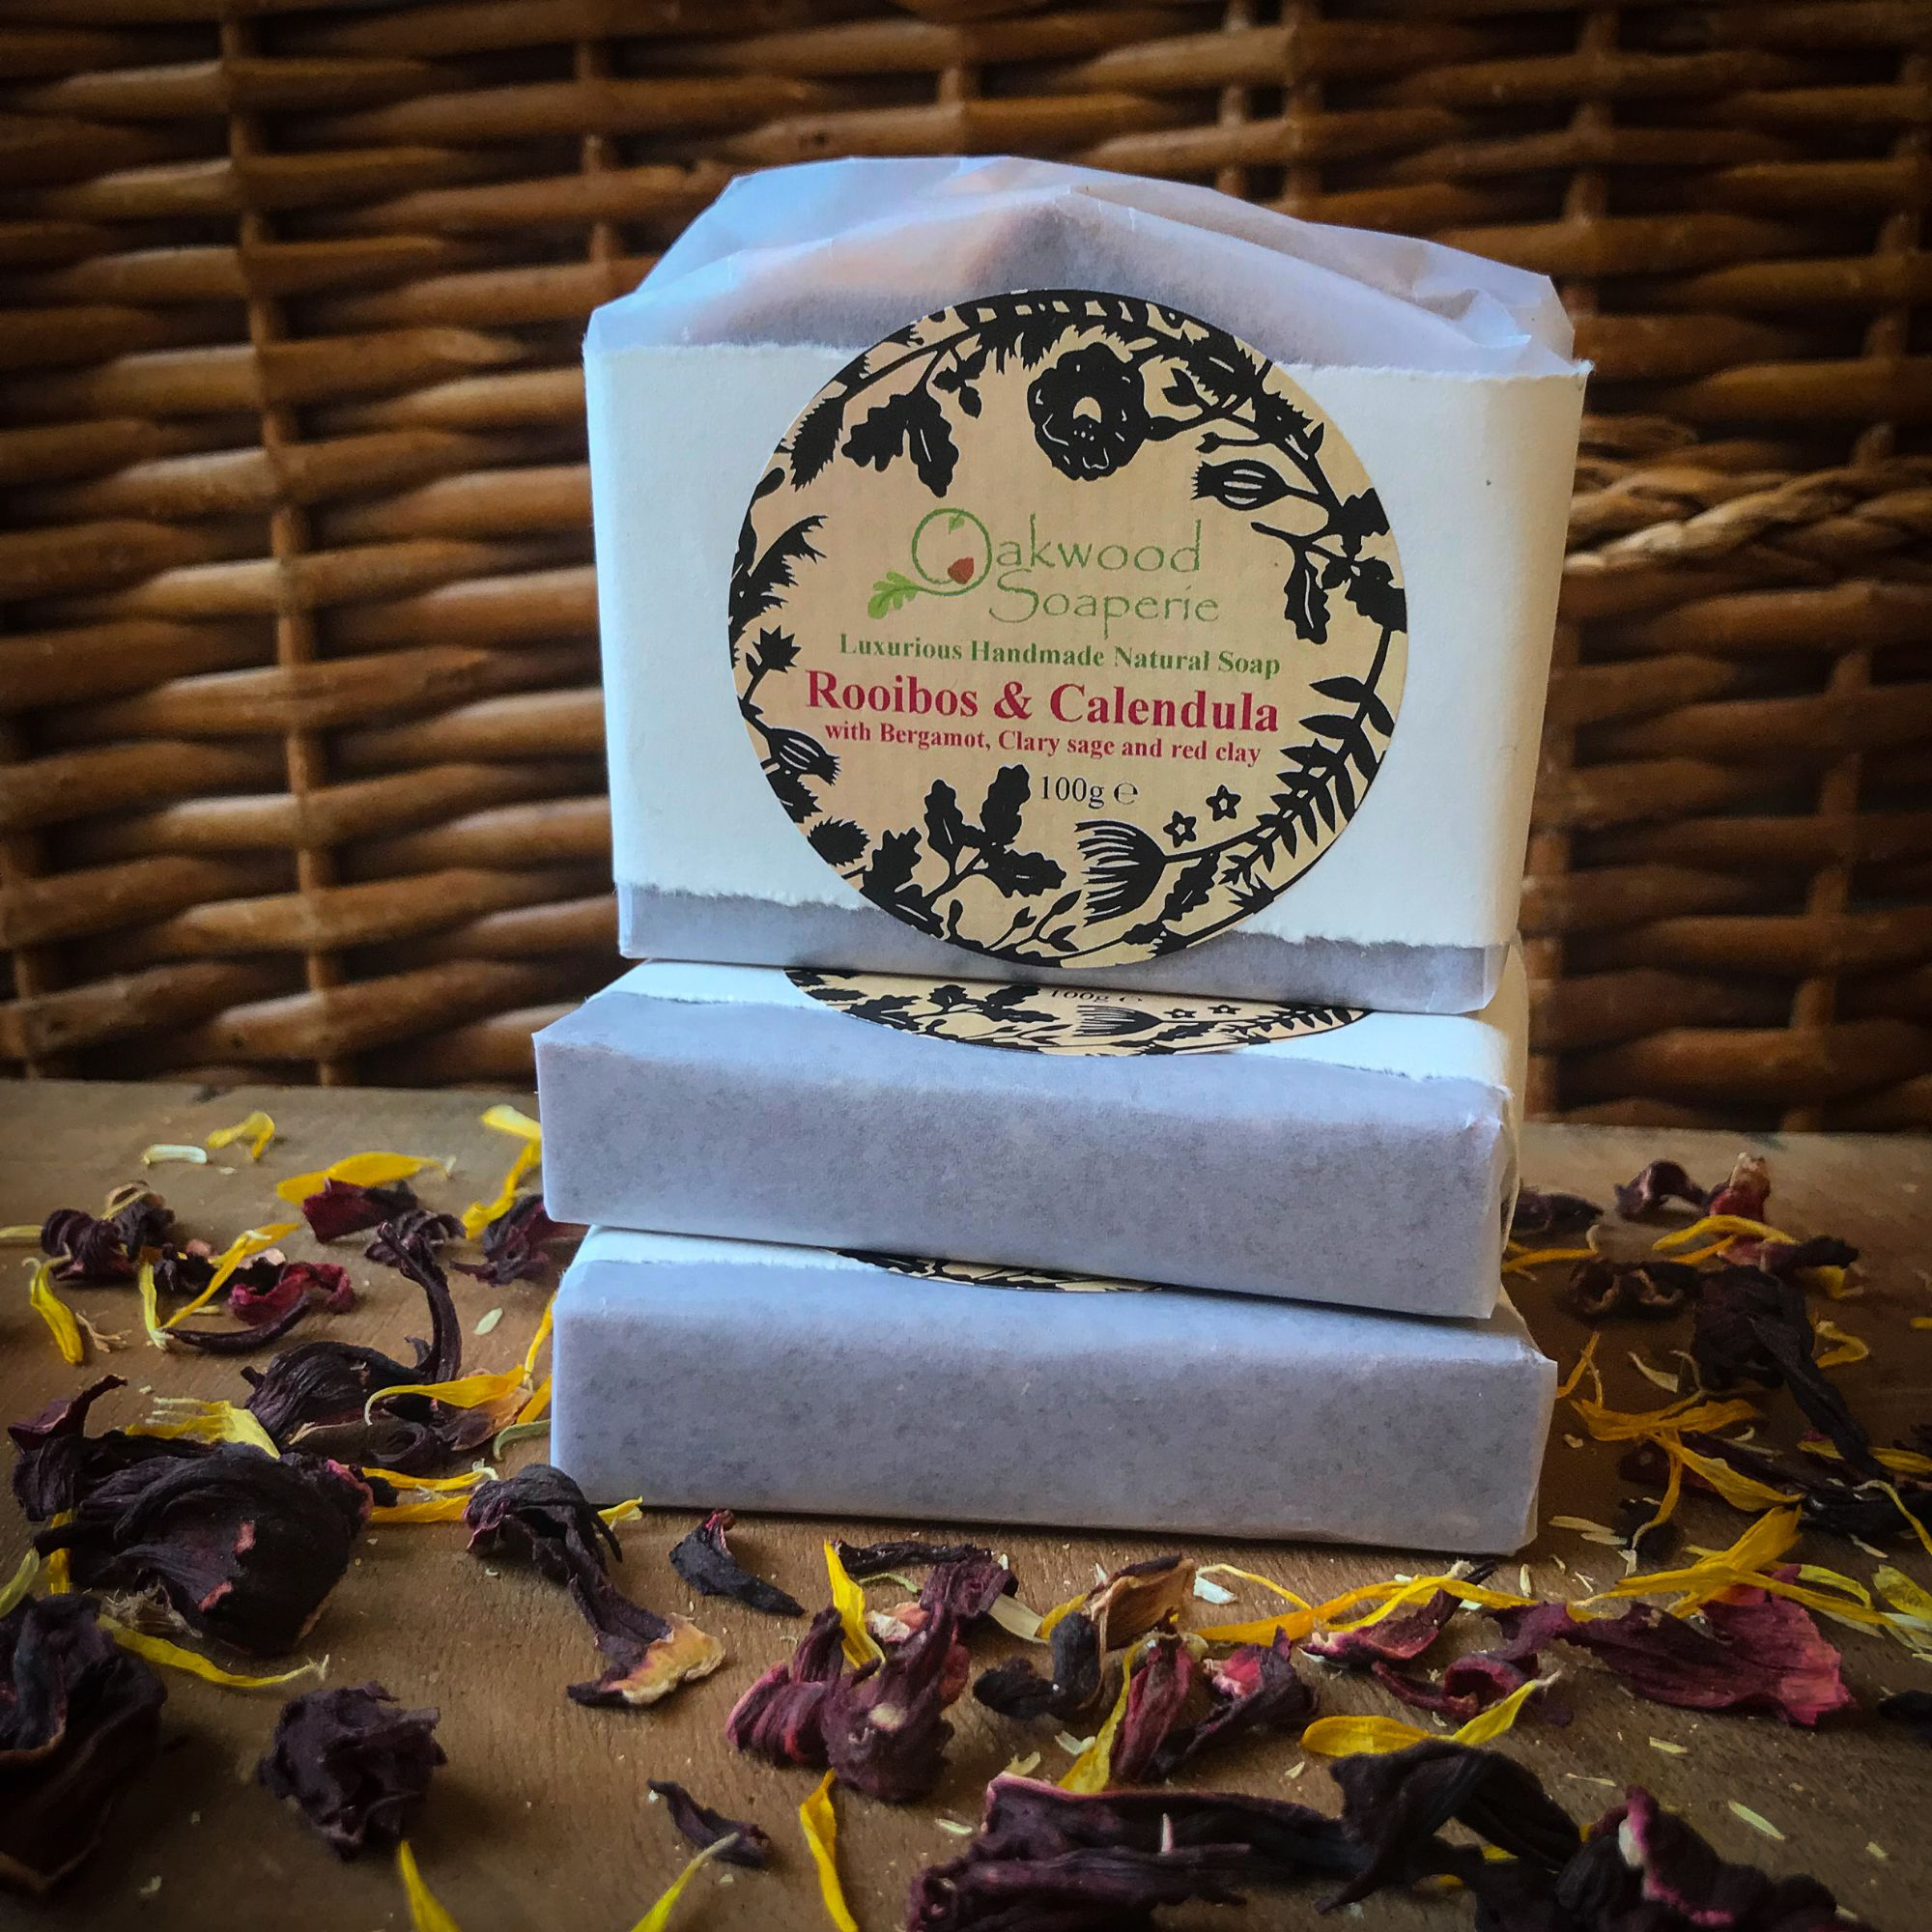 Ltd. edition Rooibos & Calendula handmade soap